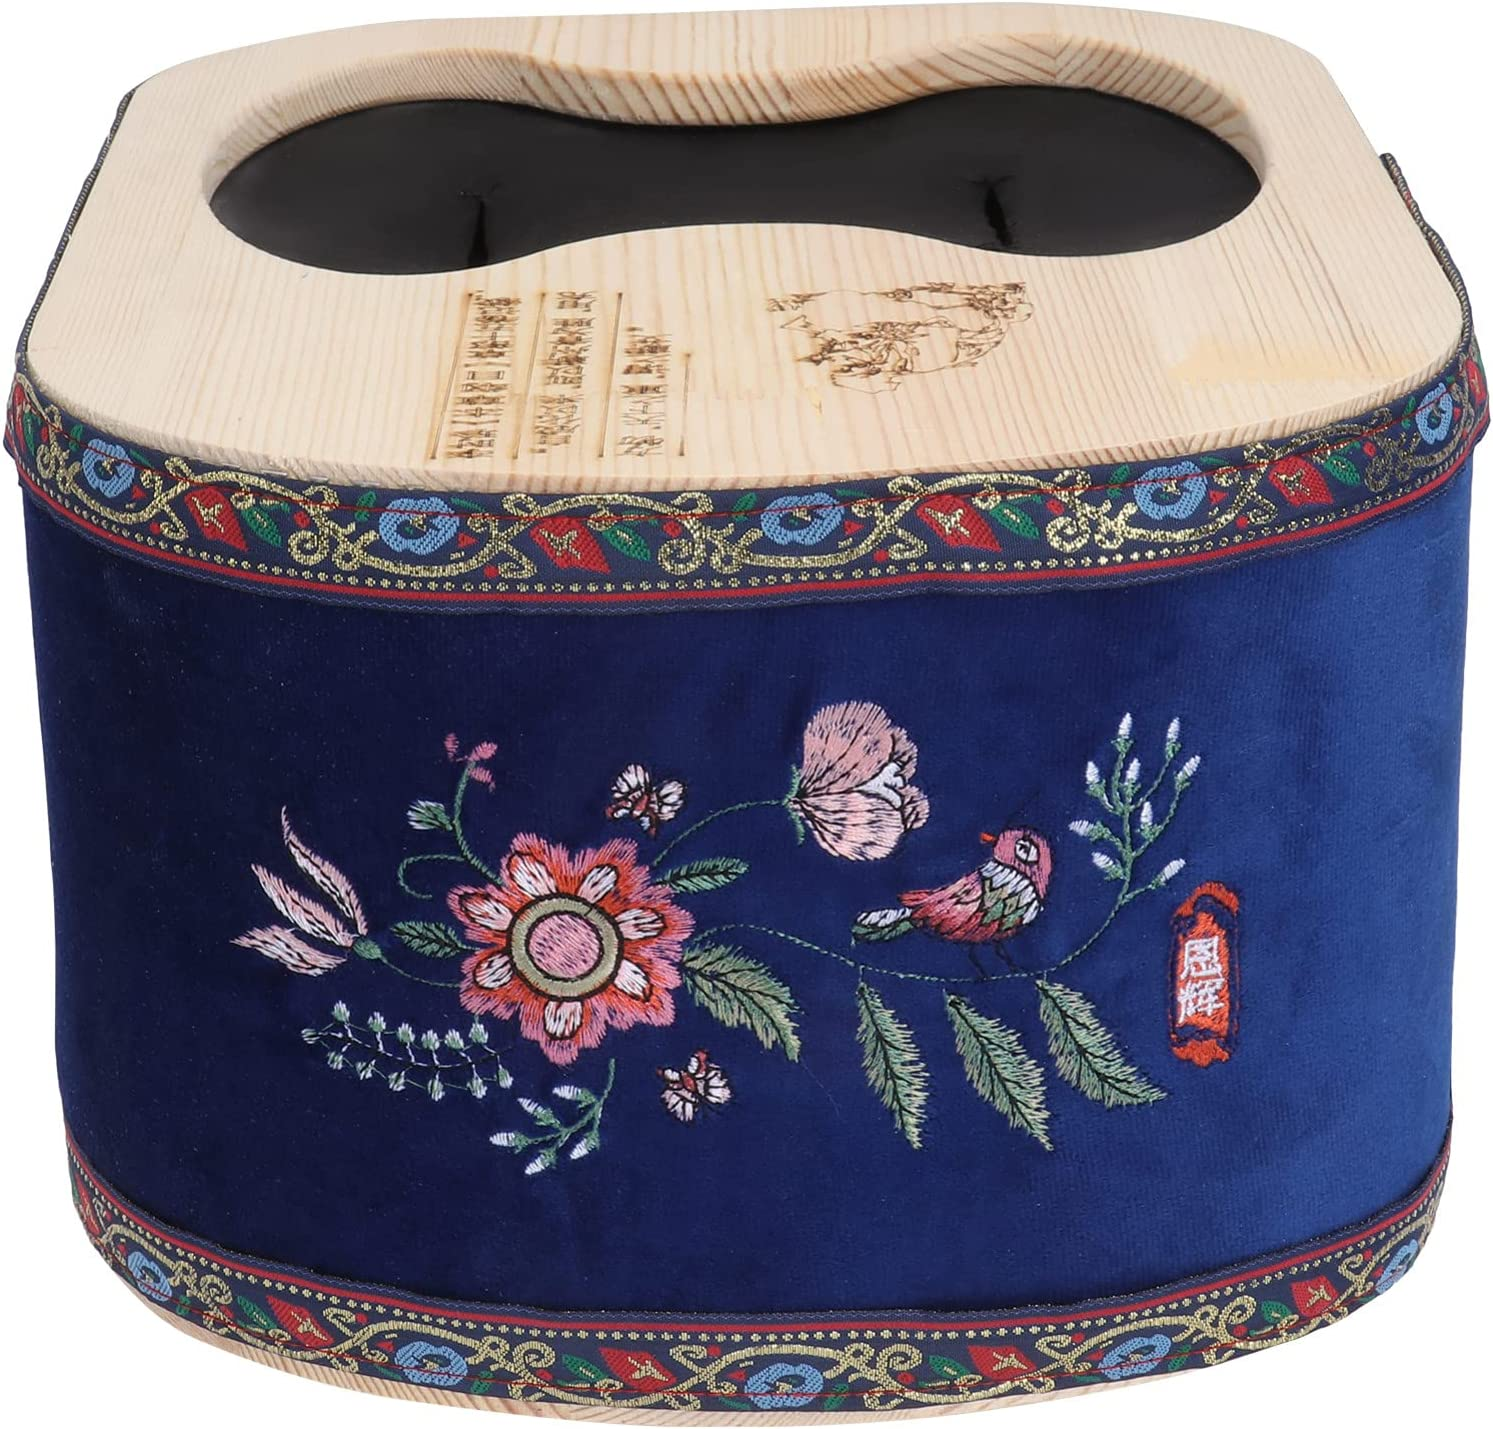 Beaupretty Moxibustion Treatment Box Online limited product Traditinal Moxa Wooden outlet